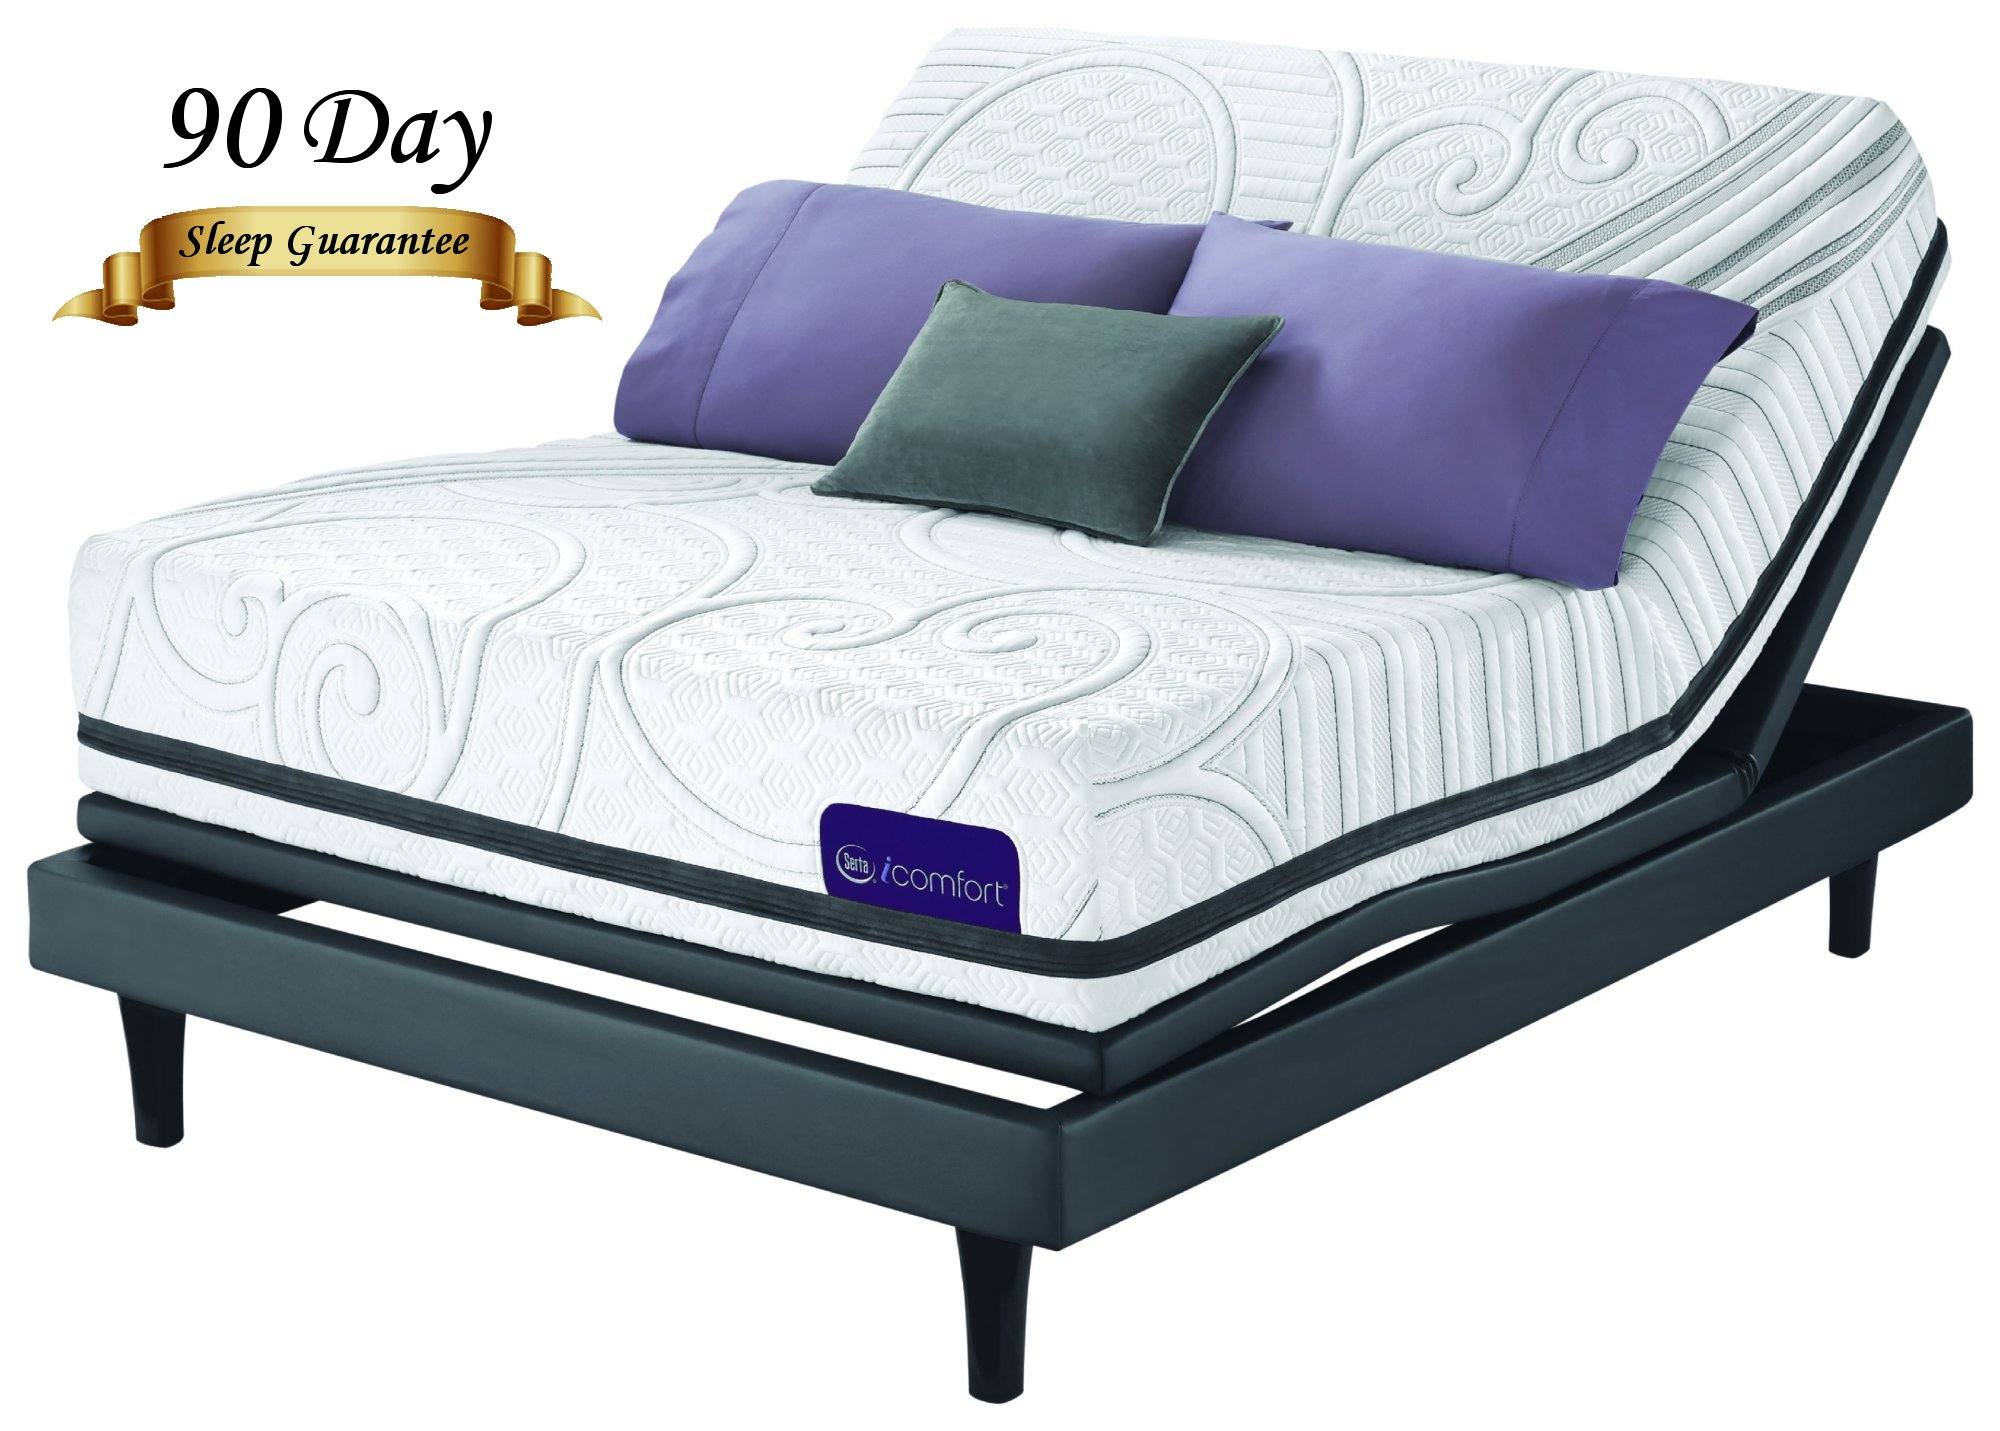 Serta Mattress Sets